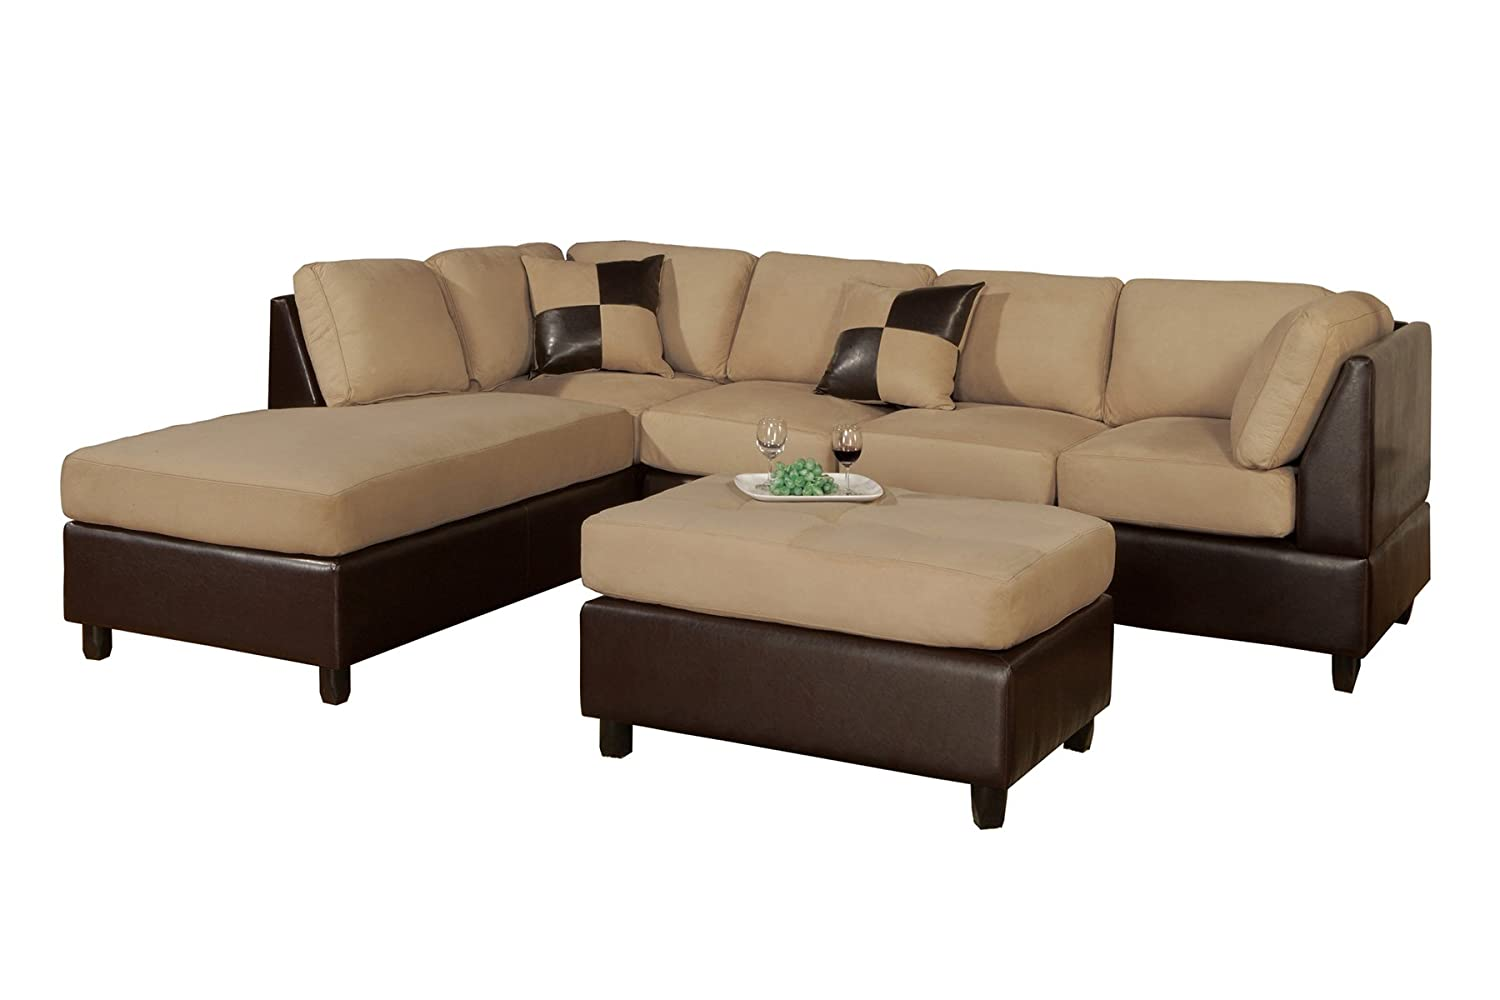 62640 bobkona hungtinton microfiber faux leather 3 piece for 3 piece microfiber sectional sofa with chaise